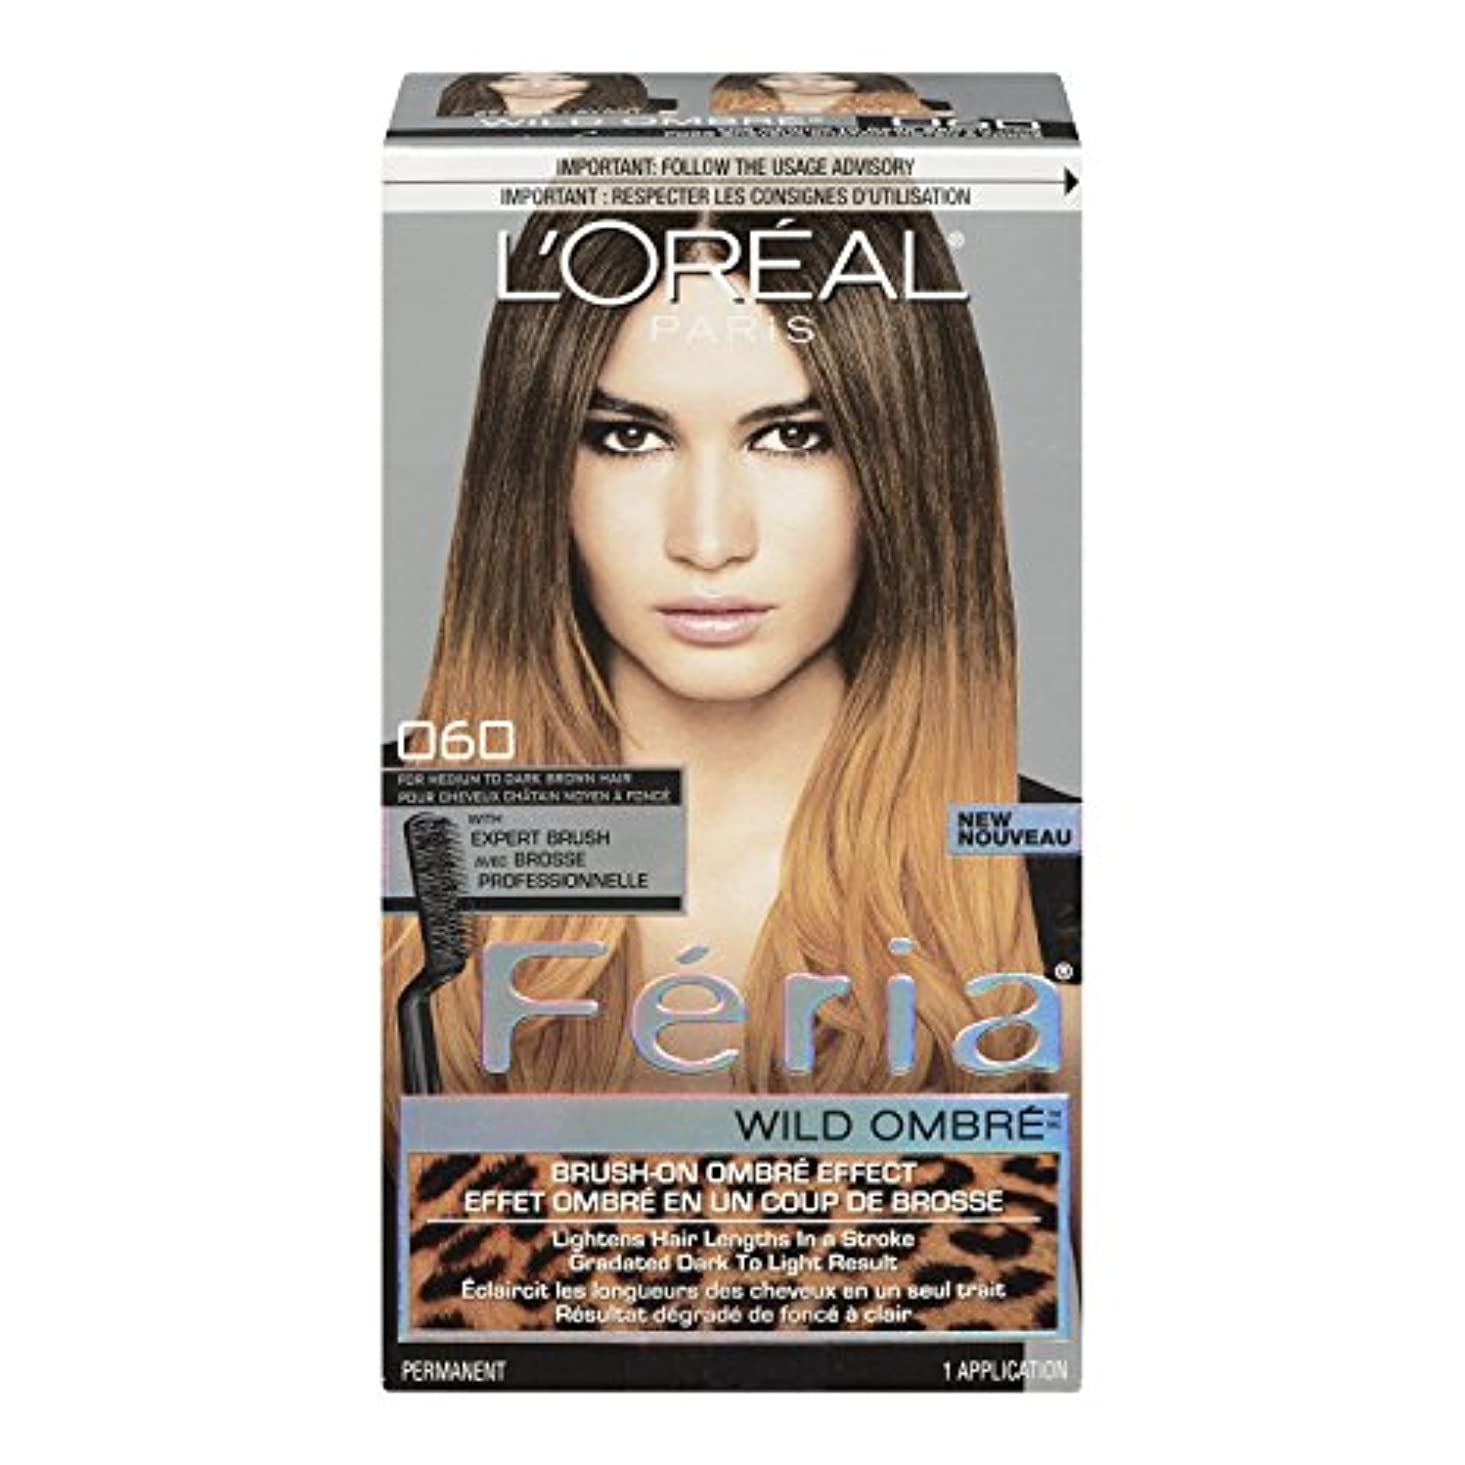 アドバンテージ批判的おばさんL'Oreal Feria Wild Ombre Hair Color, O60 Medium to Dark Brown by L'Oreal Paris Hair Color [並行輸入品]